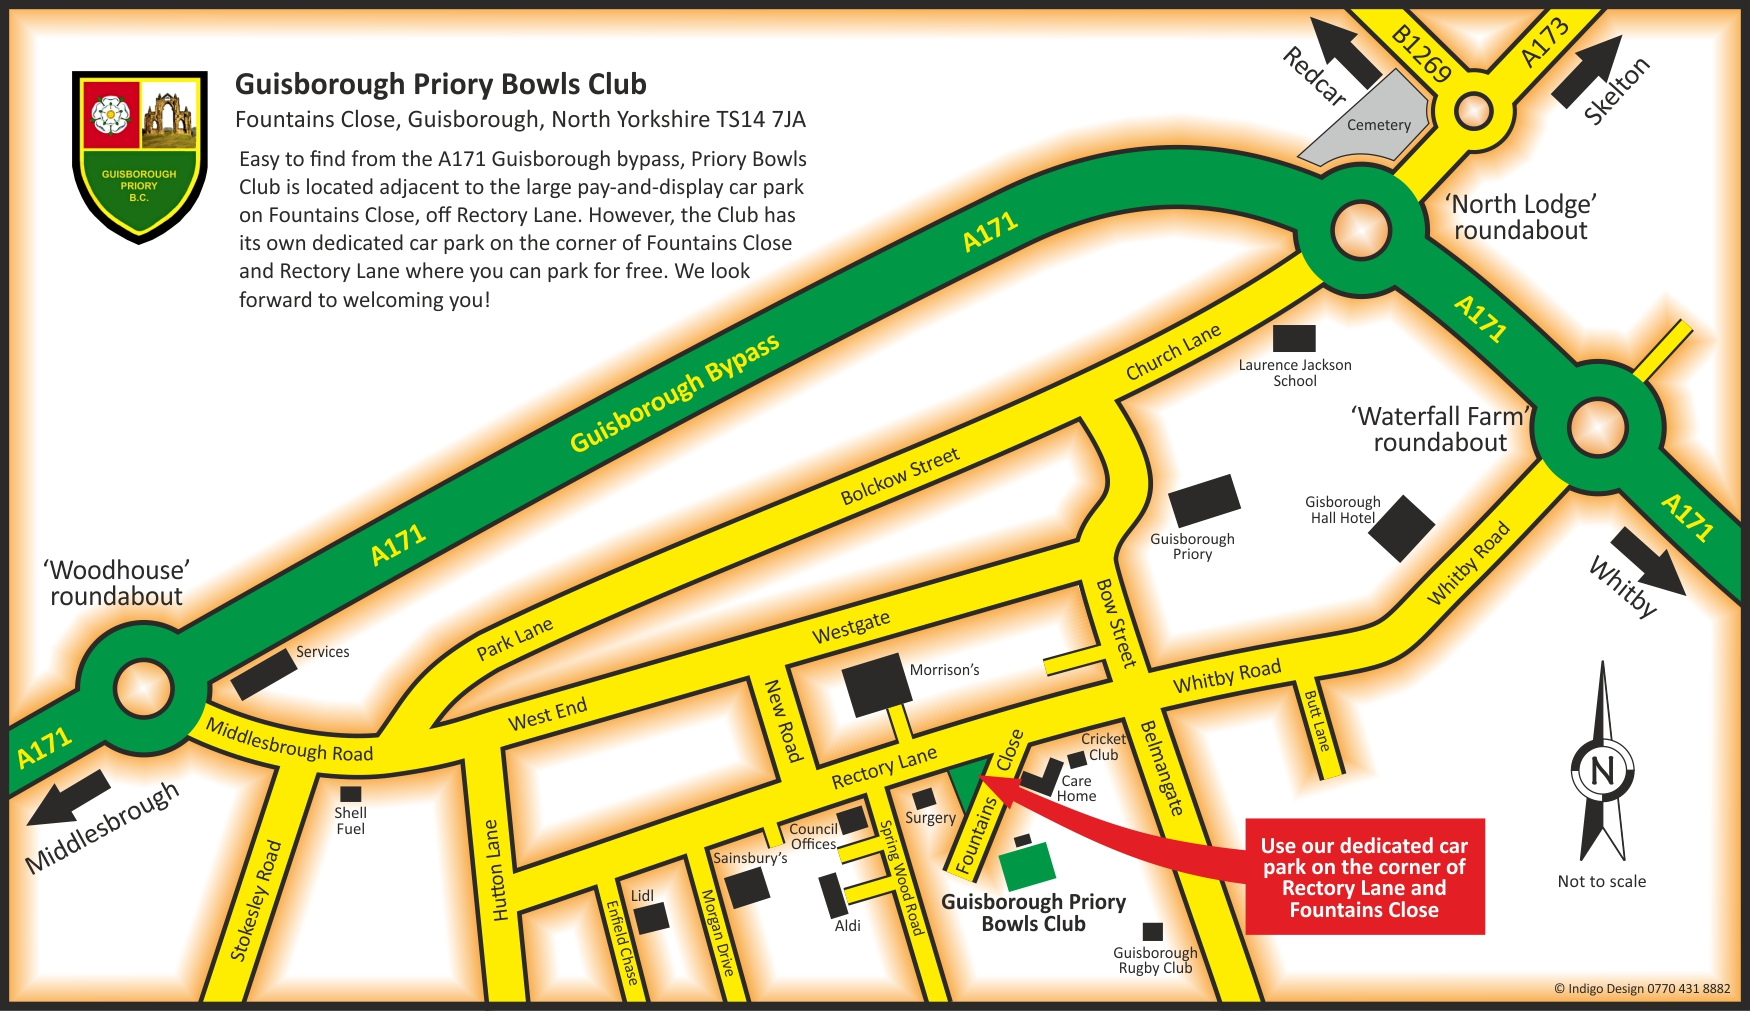 Guisborough Priory Bowls Club How to find us